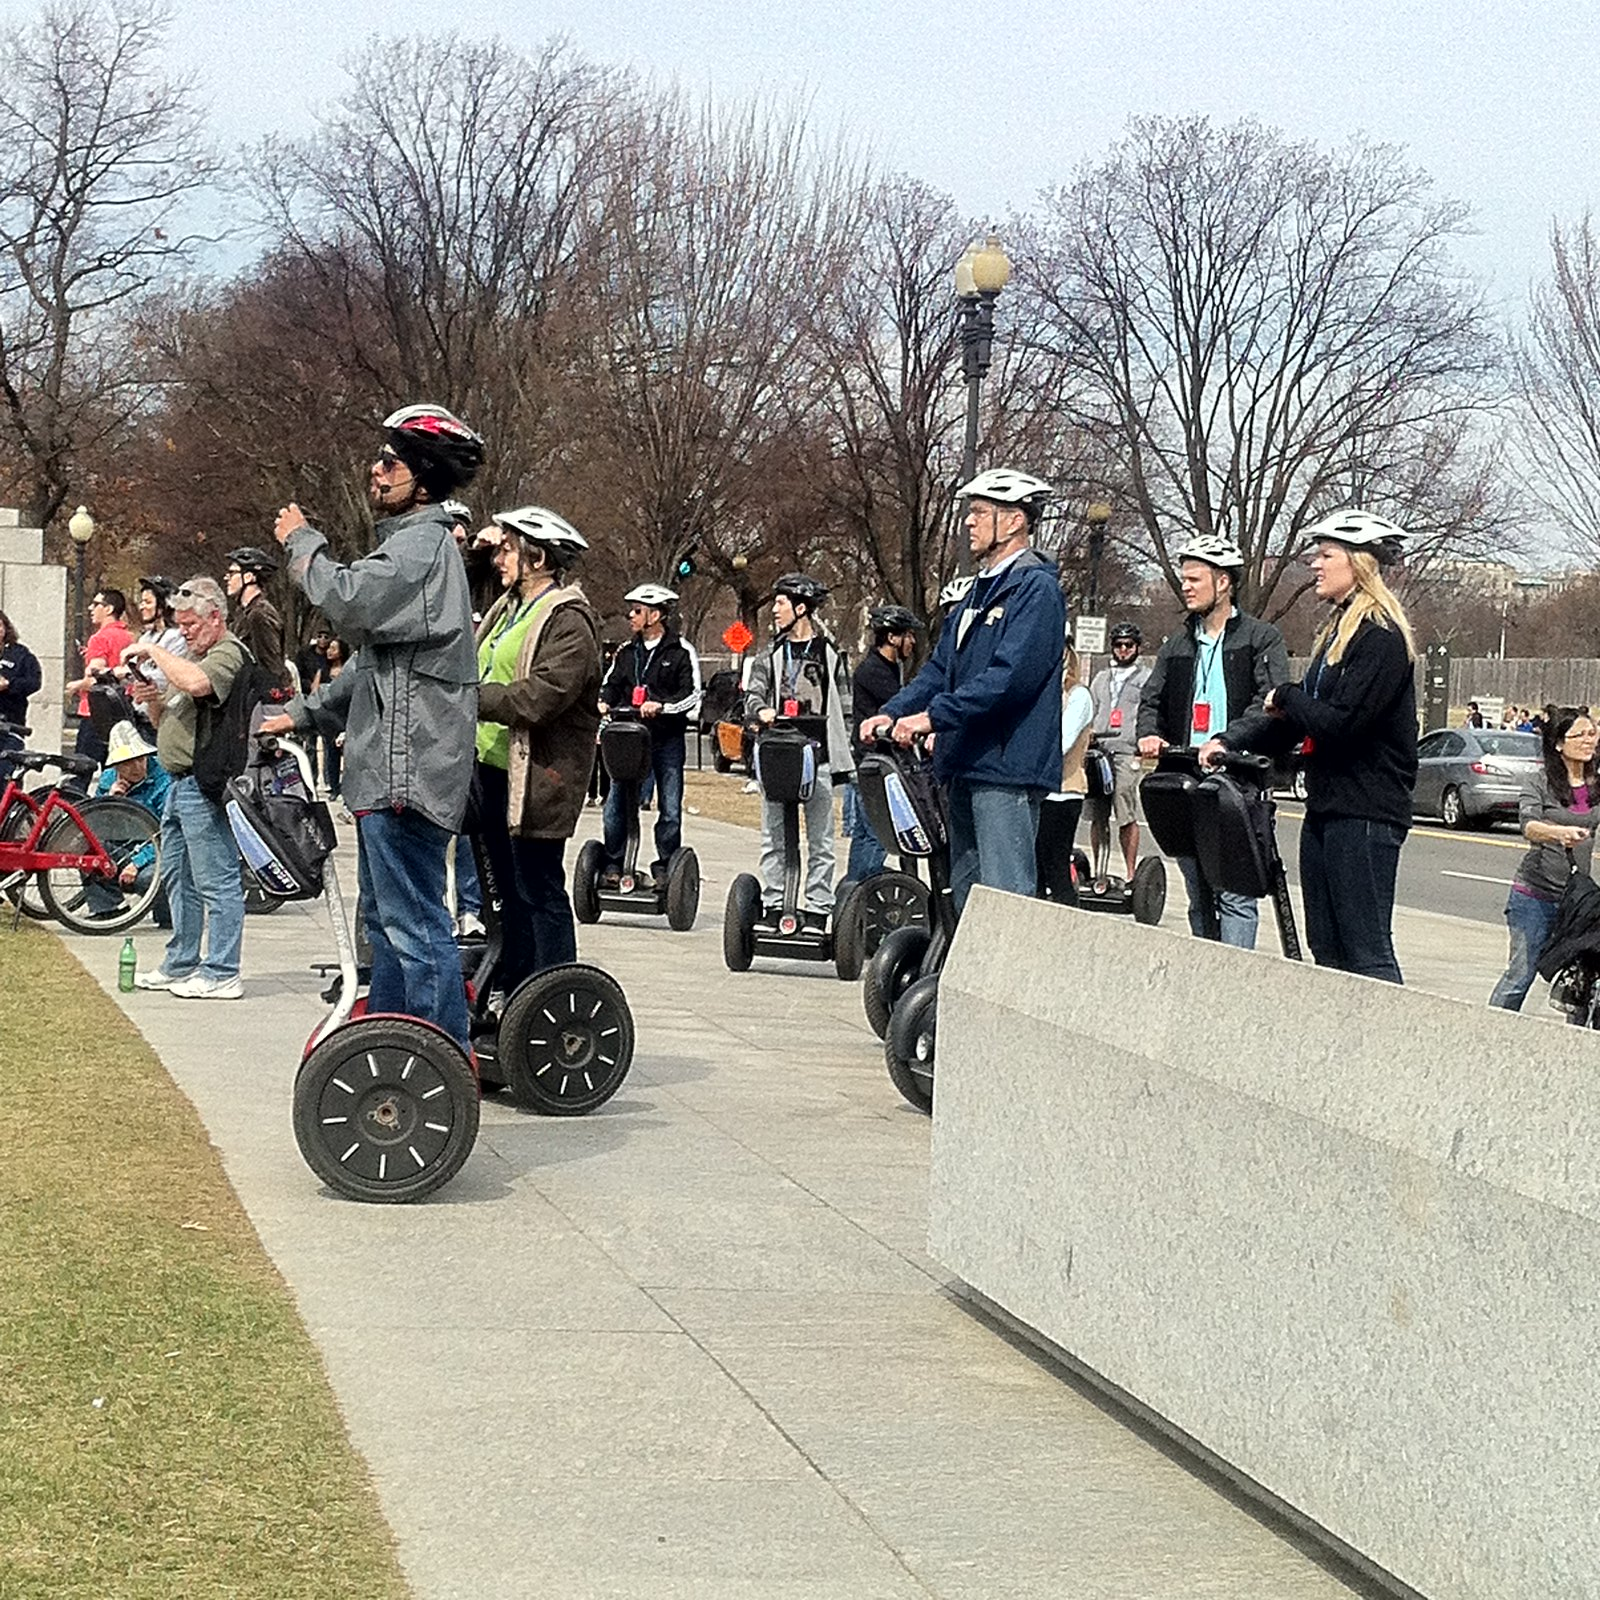 Segway tours on the National Mall = annoying!